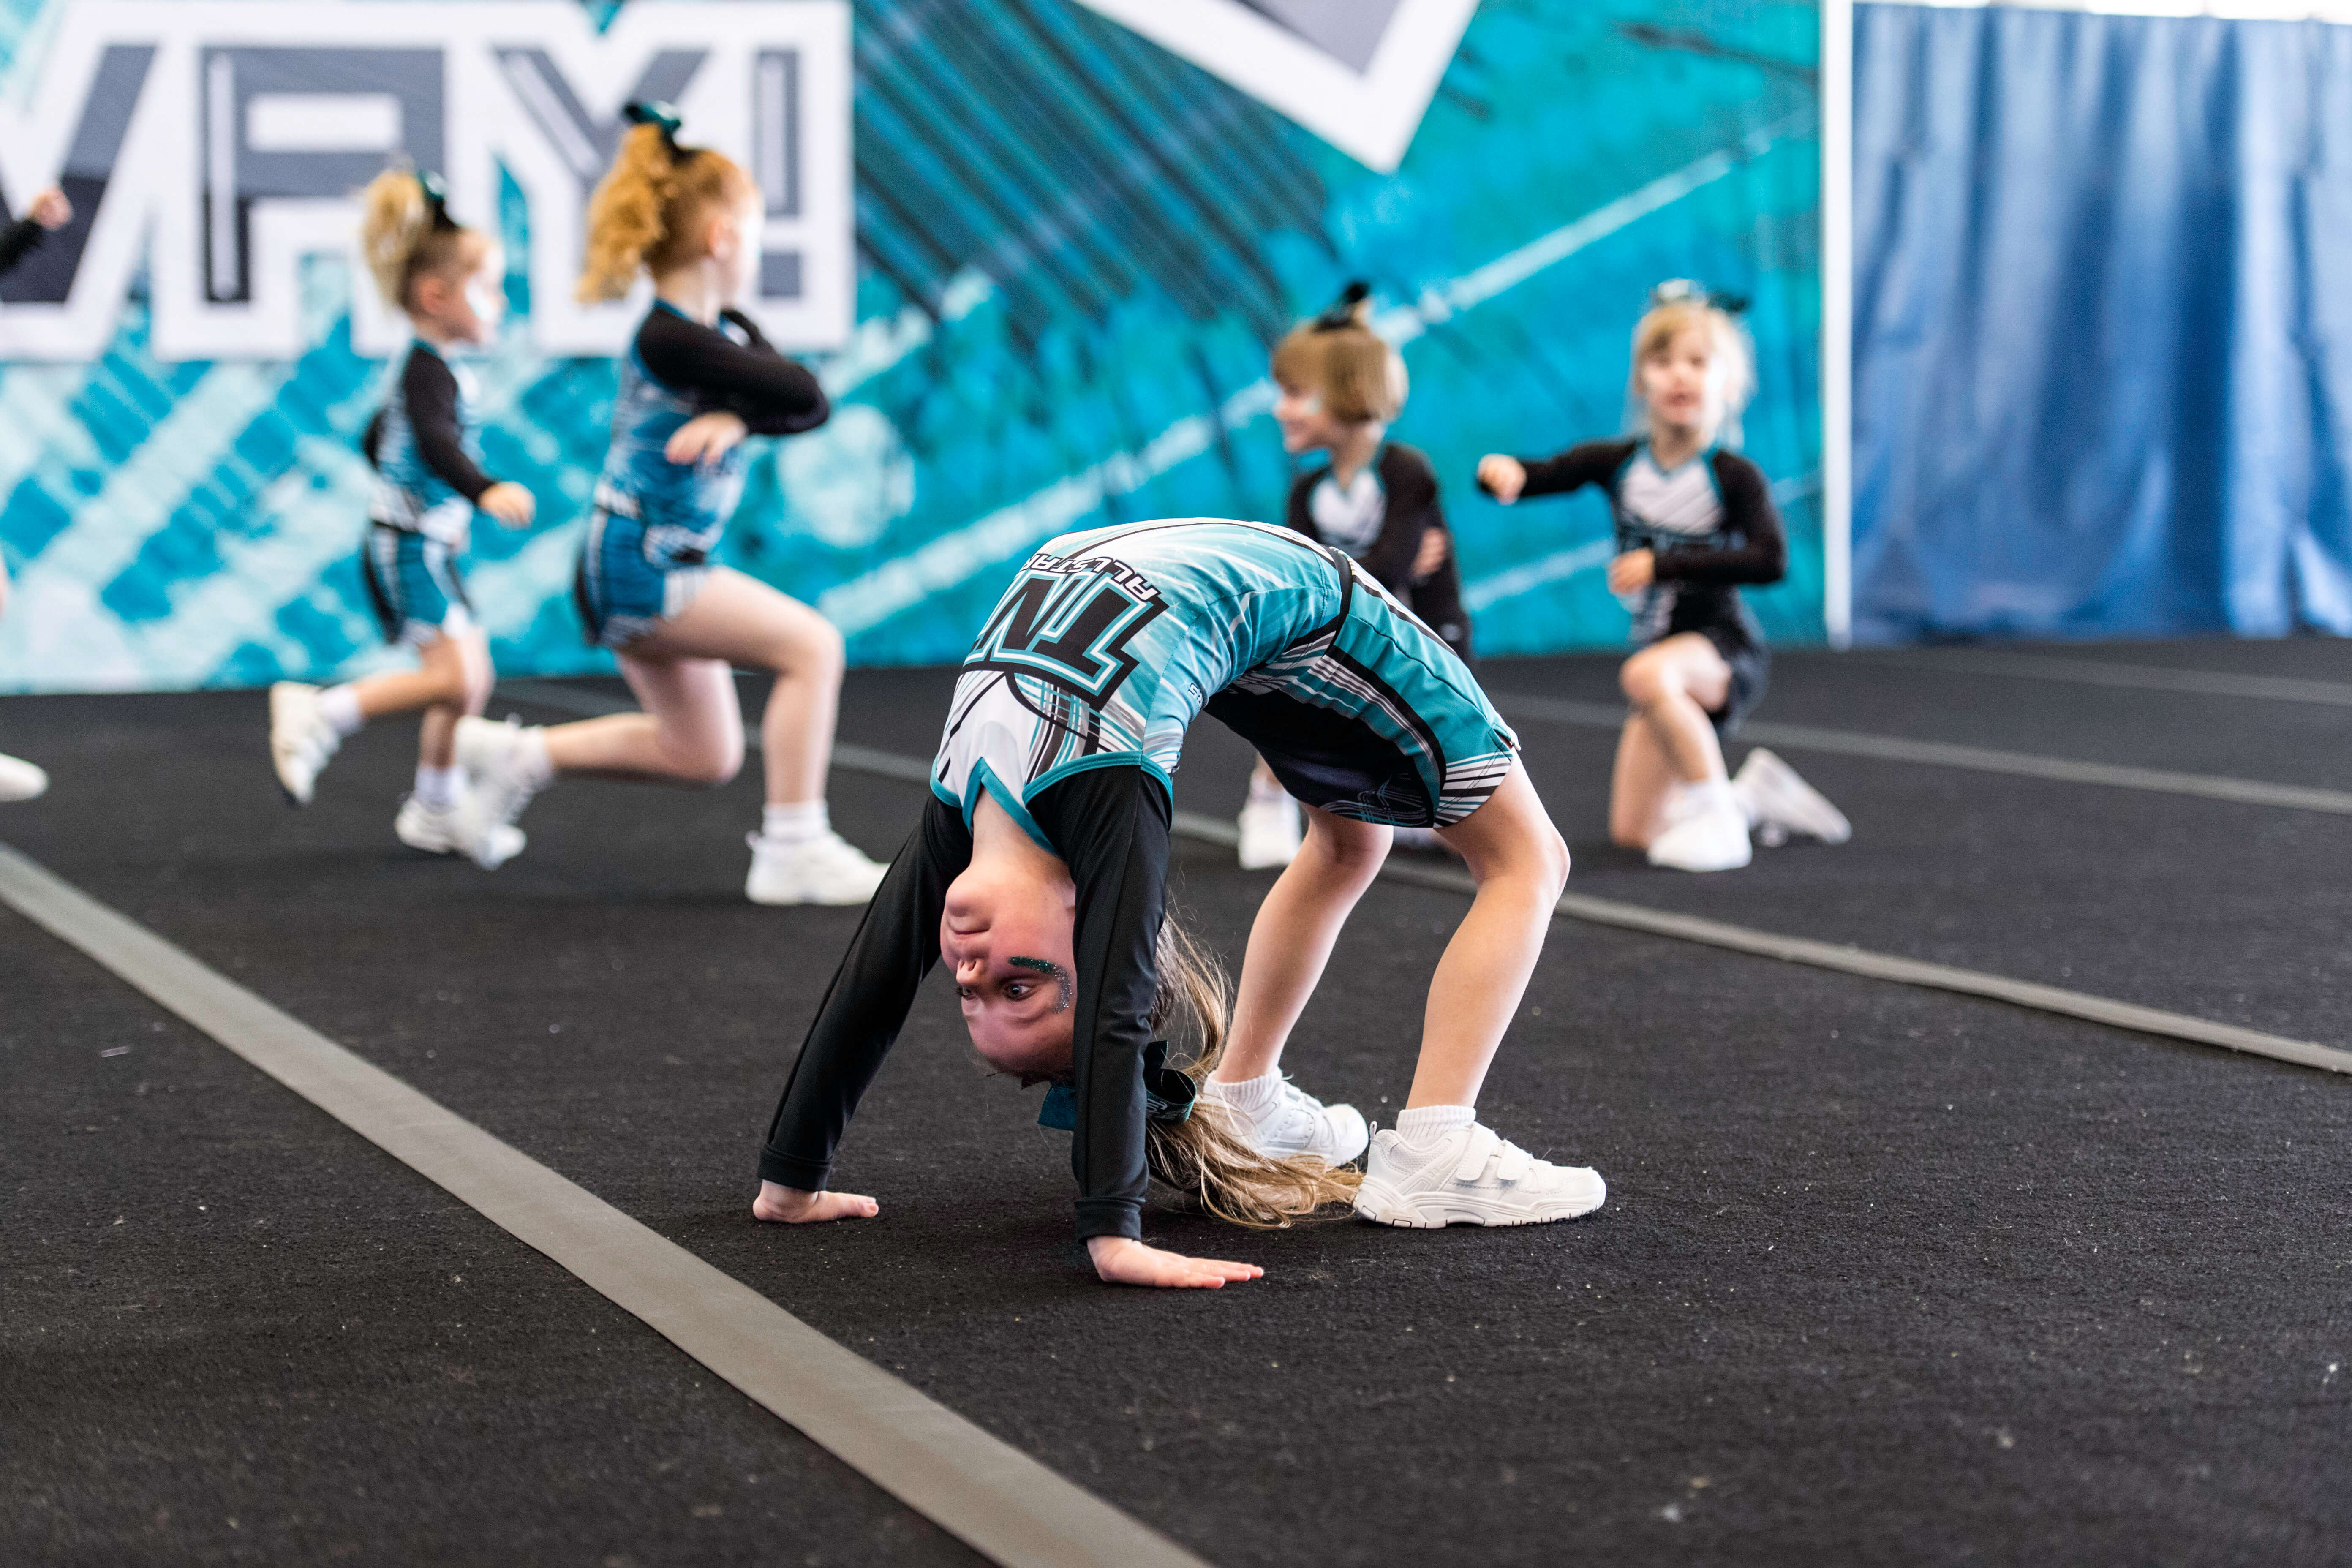 Learn cheerleading cheers - What You Need to Know